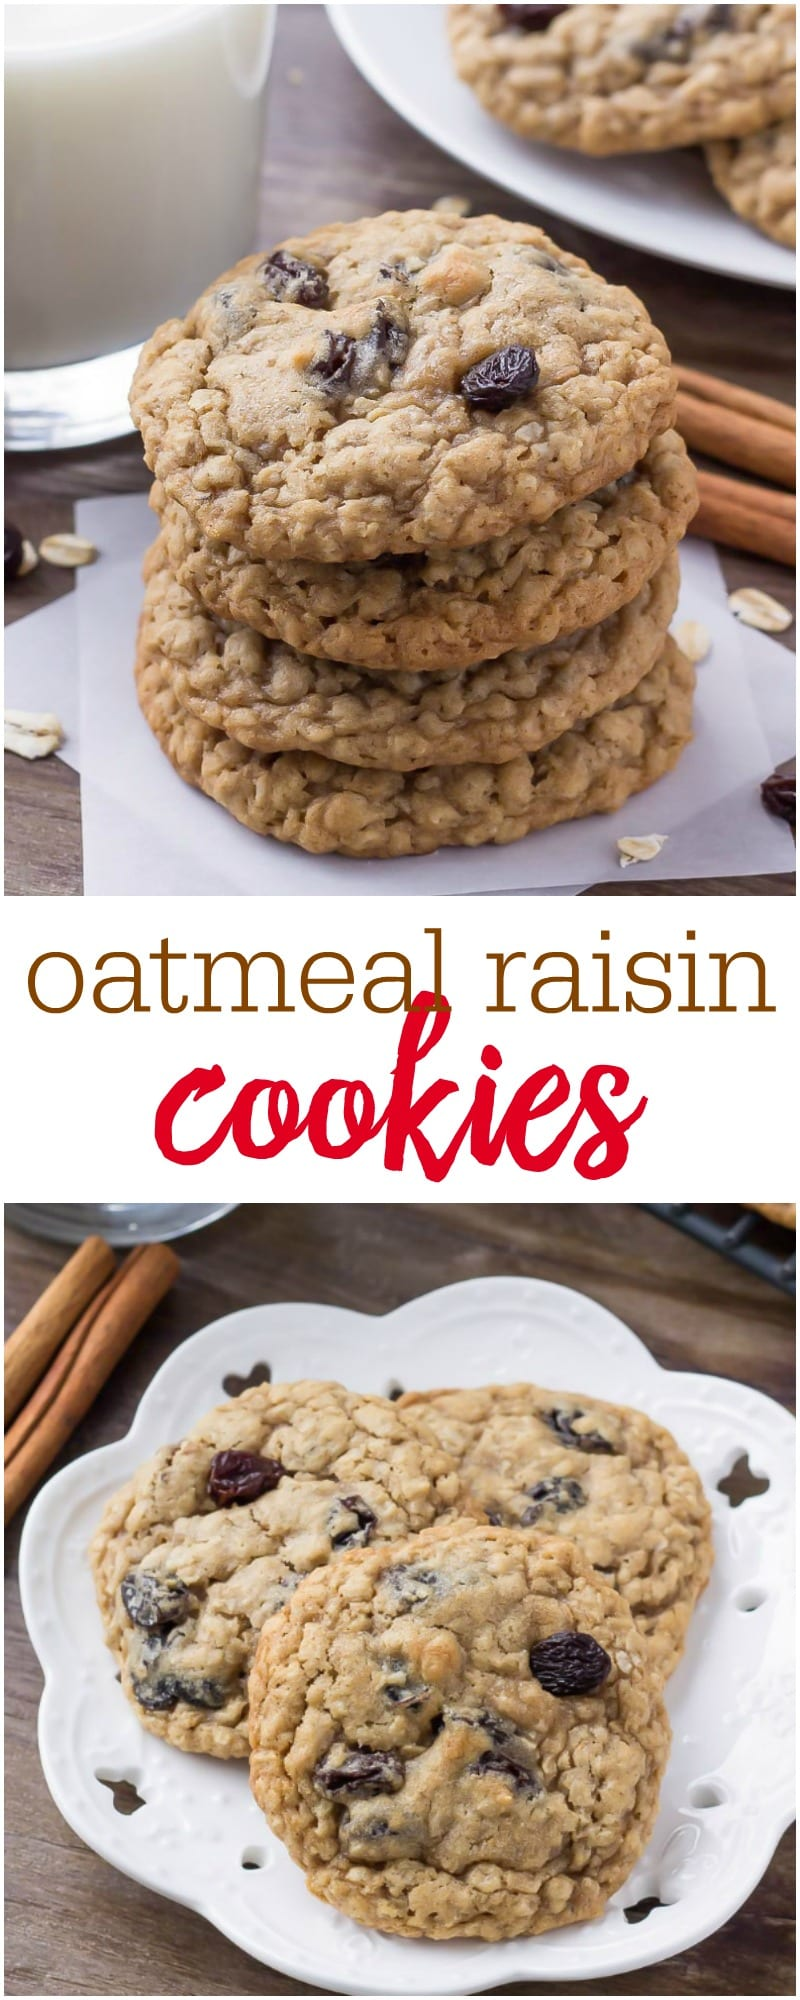 These oatmeal raisin cookies are soft and chewy with a hint of cinnamon. It's a quick and easy recipe that you can make in under 30 minutes from start to finish.